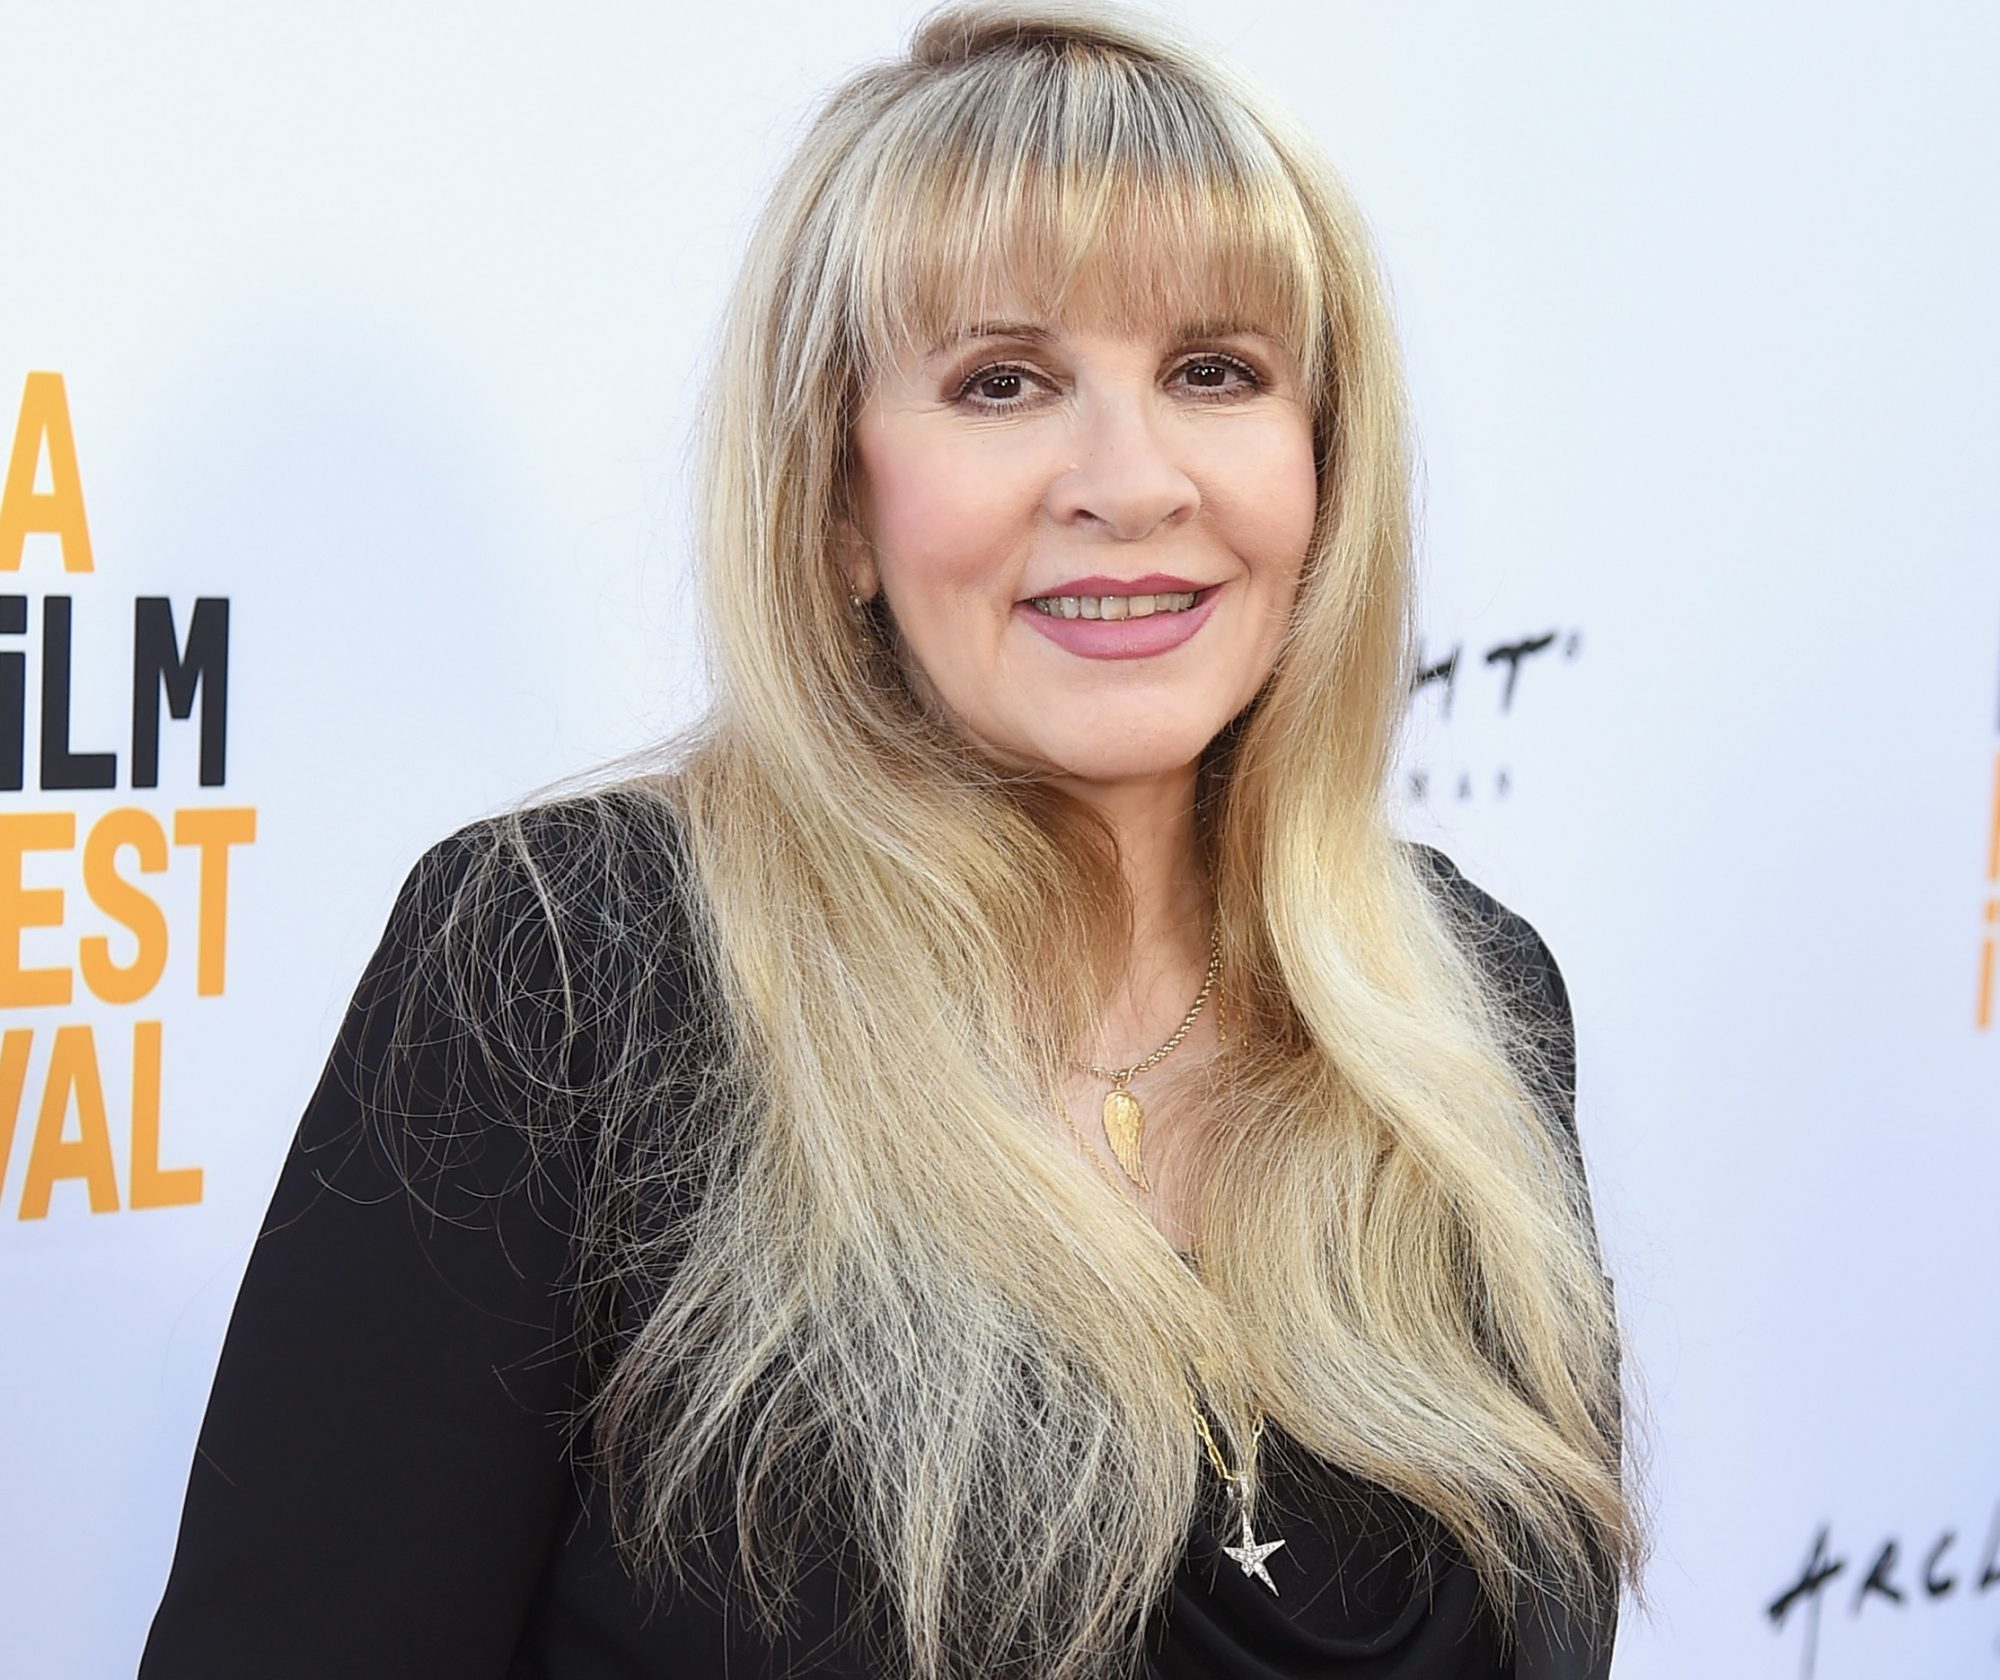 stevie nicks fleetwood mac abortion